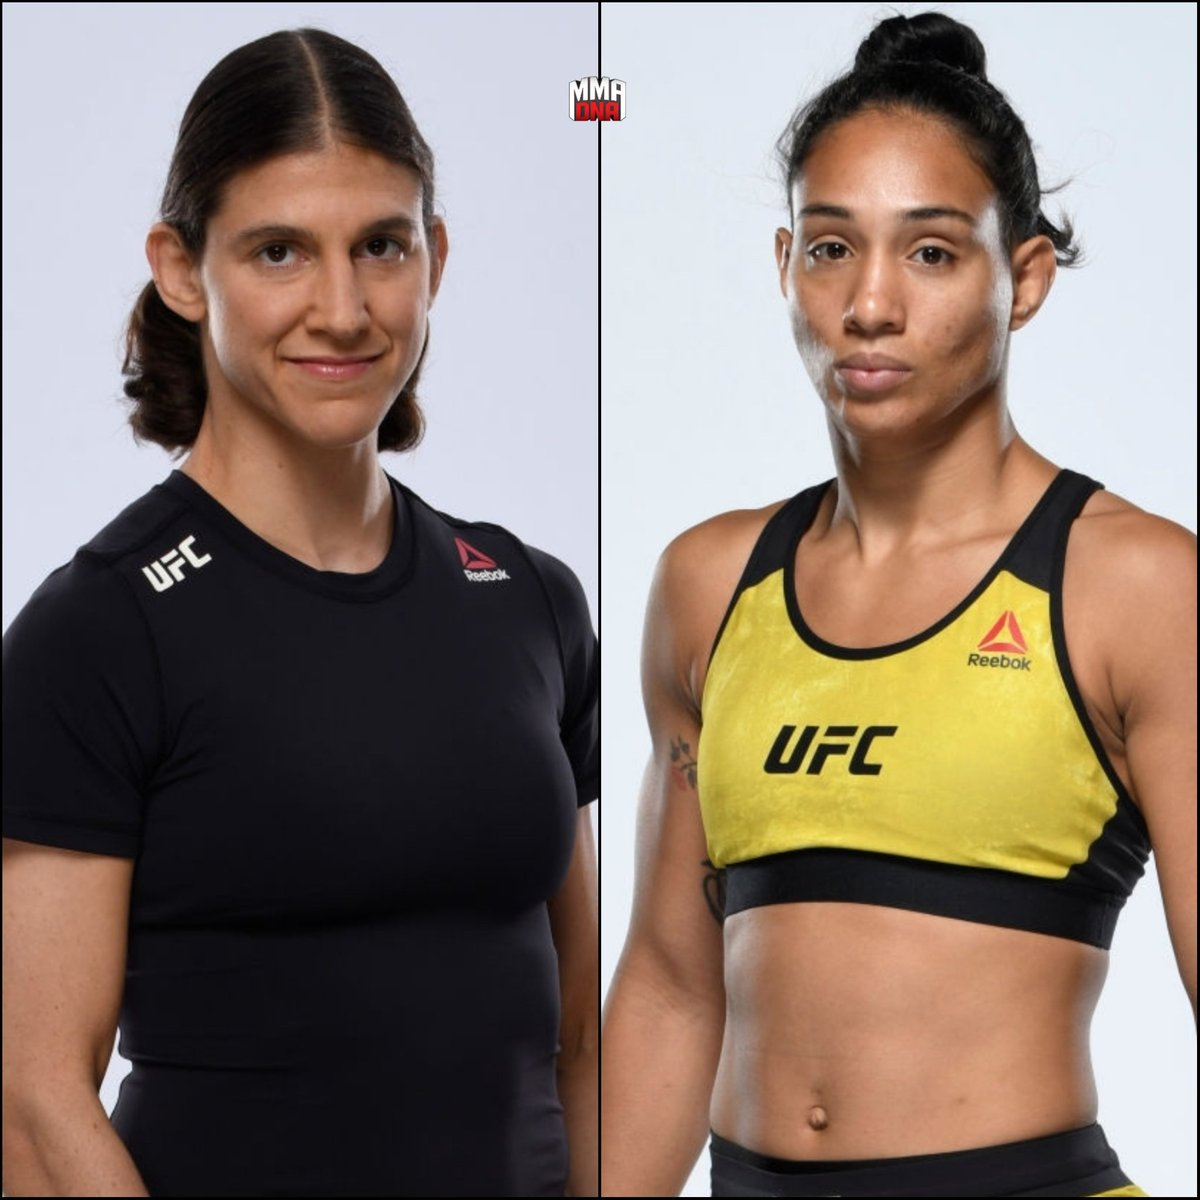 Roxanne Modafferi will fight Taila Santos at UFC event on May 8th. (per @marbarone) #UFC #MMA #UFCESPN #WMMA